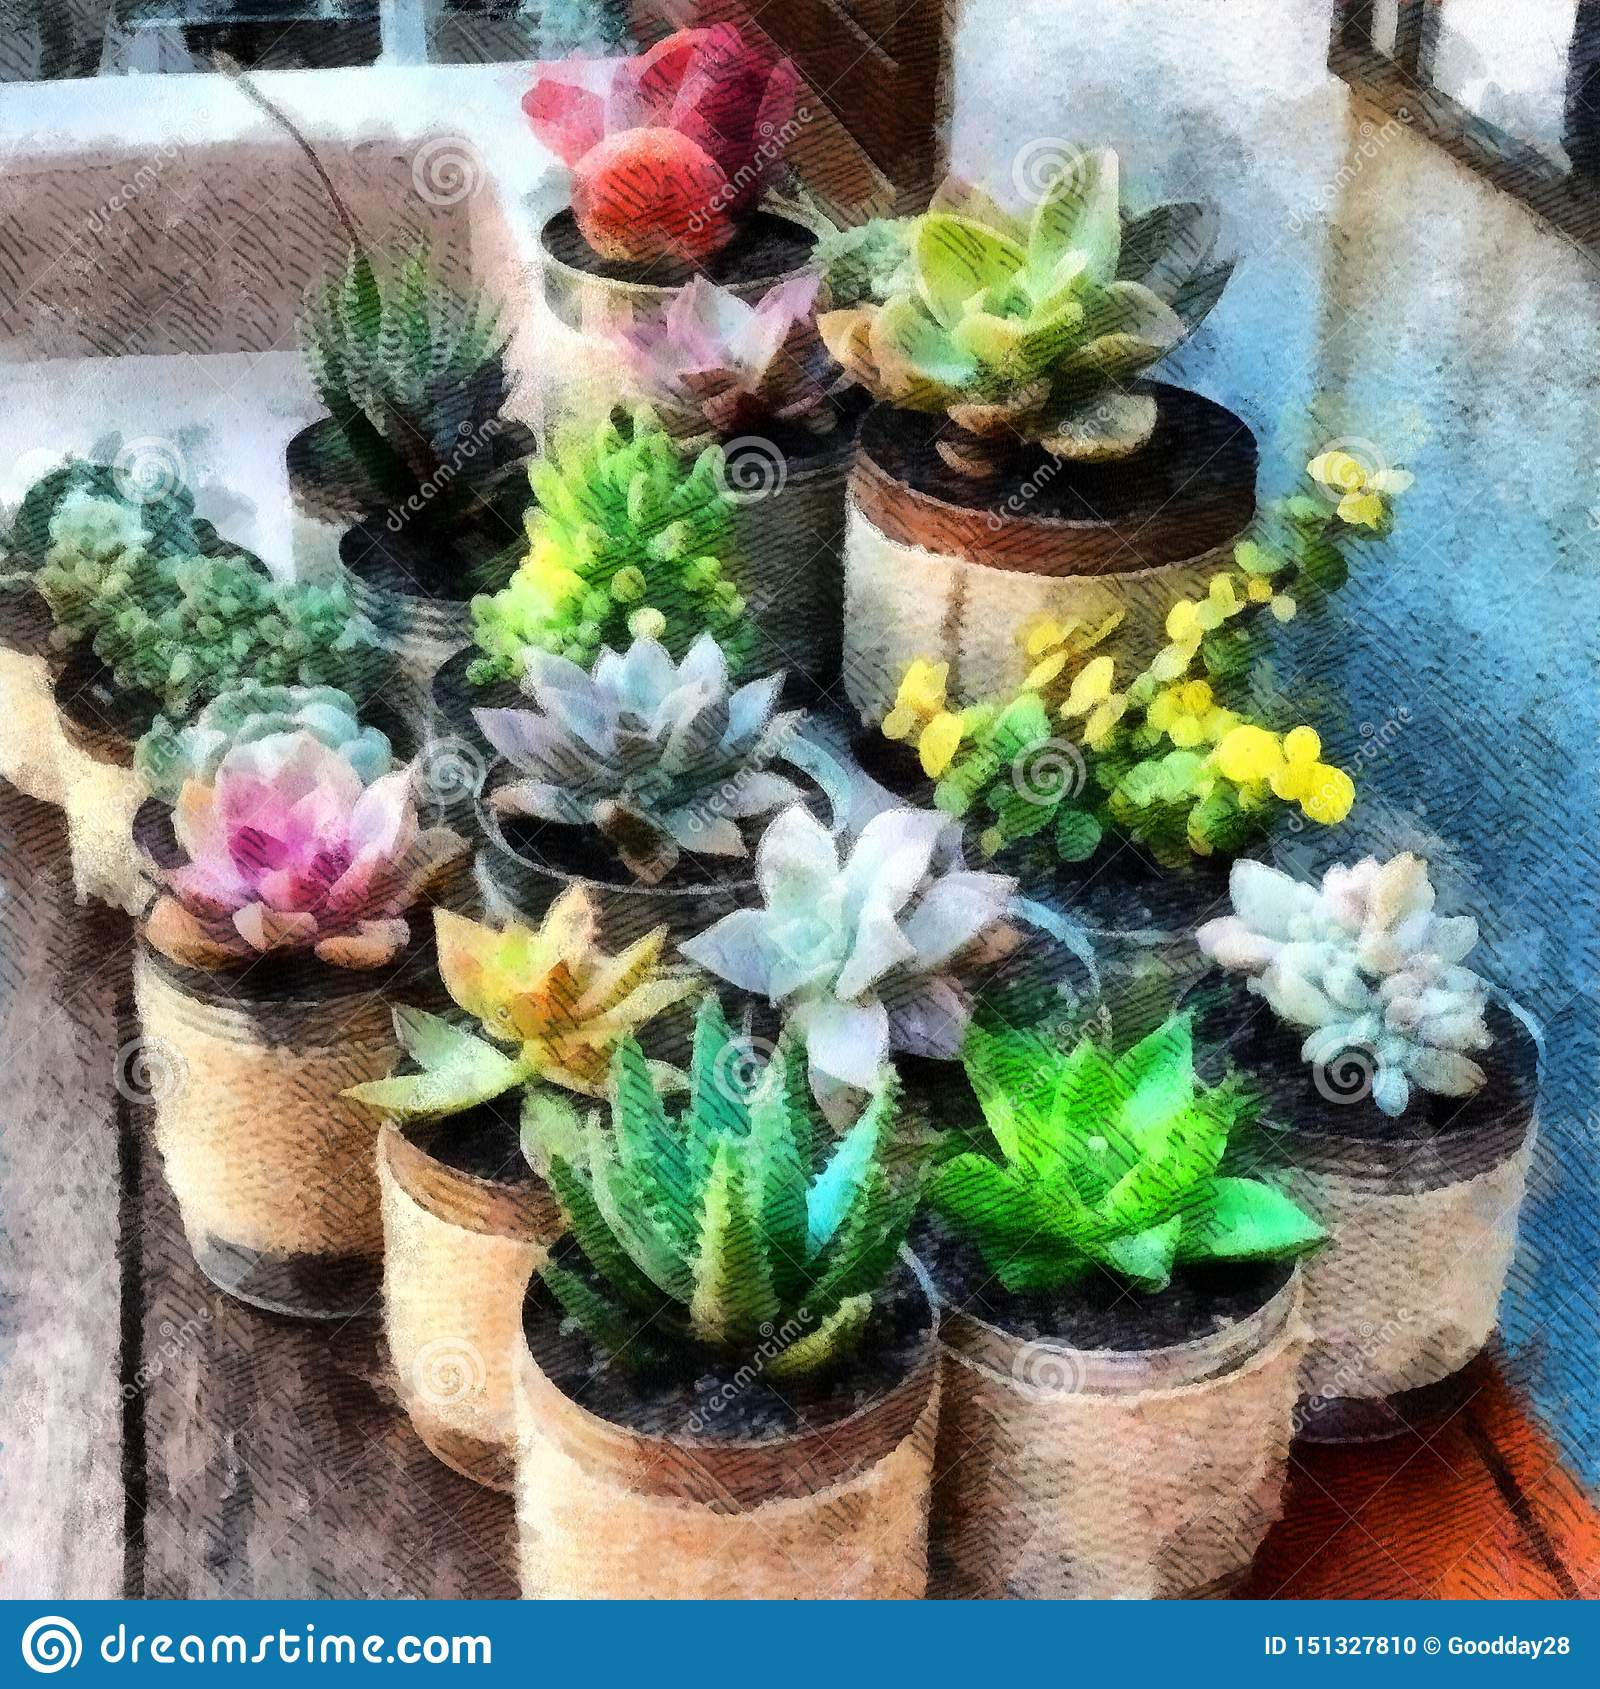 Succulent Plants Clay Pots On Wooden Table Watercolor Painting Wallpaper Background Stock Illustration Illustration Of Paint Nature 151327810